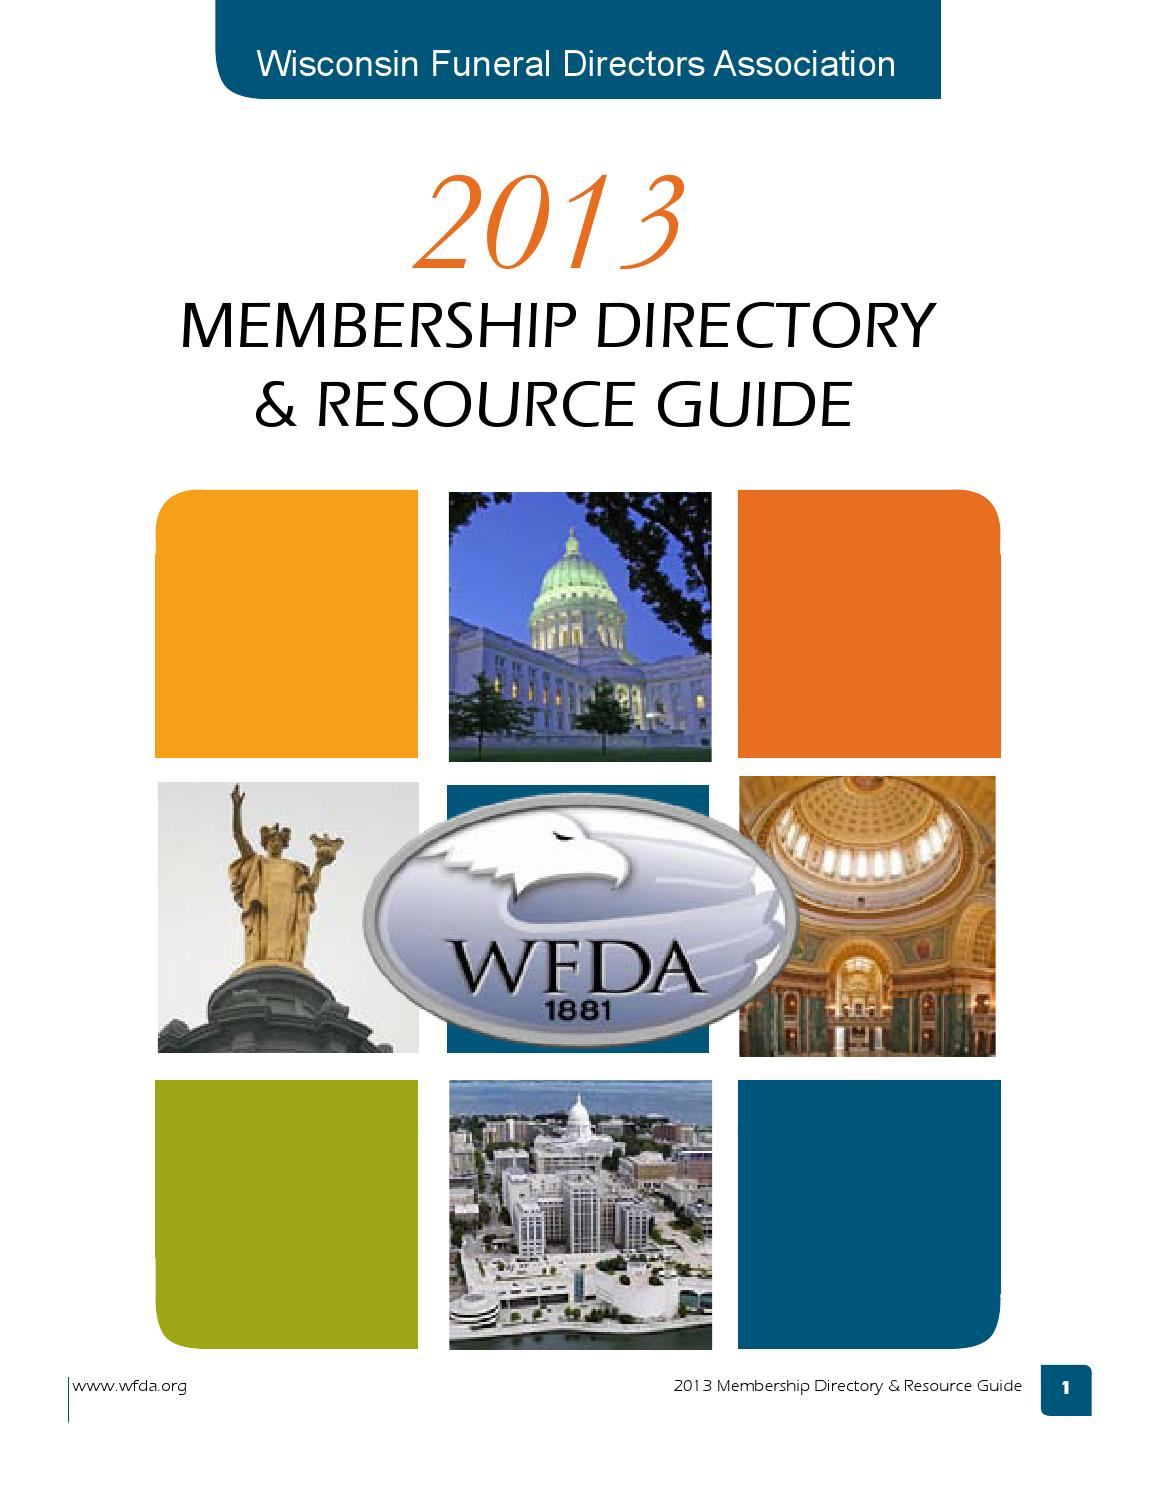 Wfda 2013 Directory 7 1 13 Issuu By Wisconsin Funeral